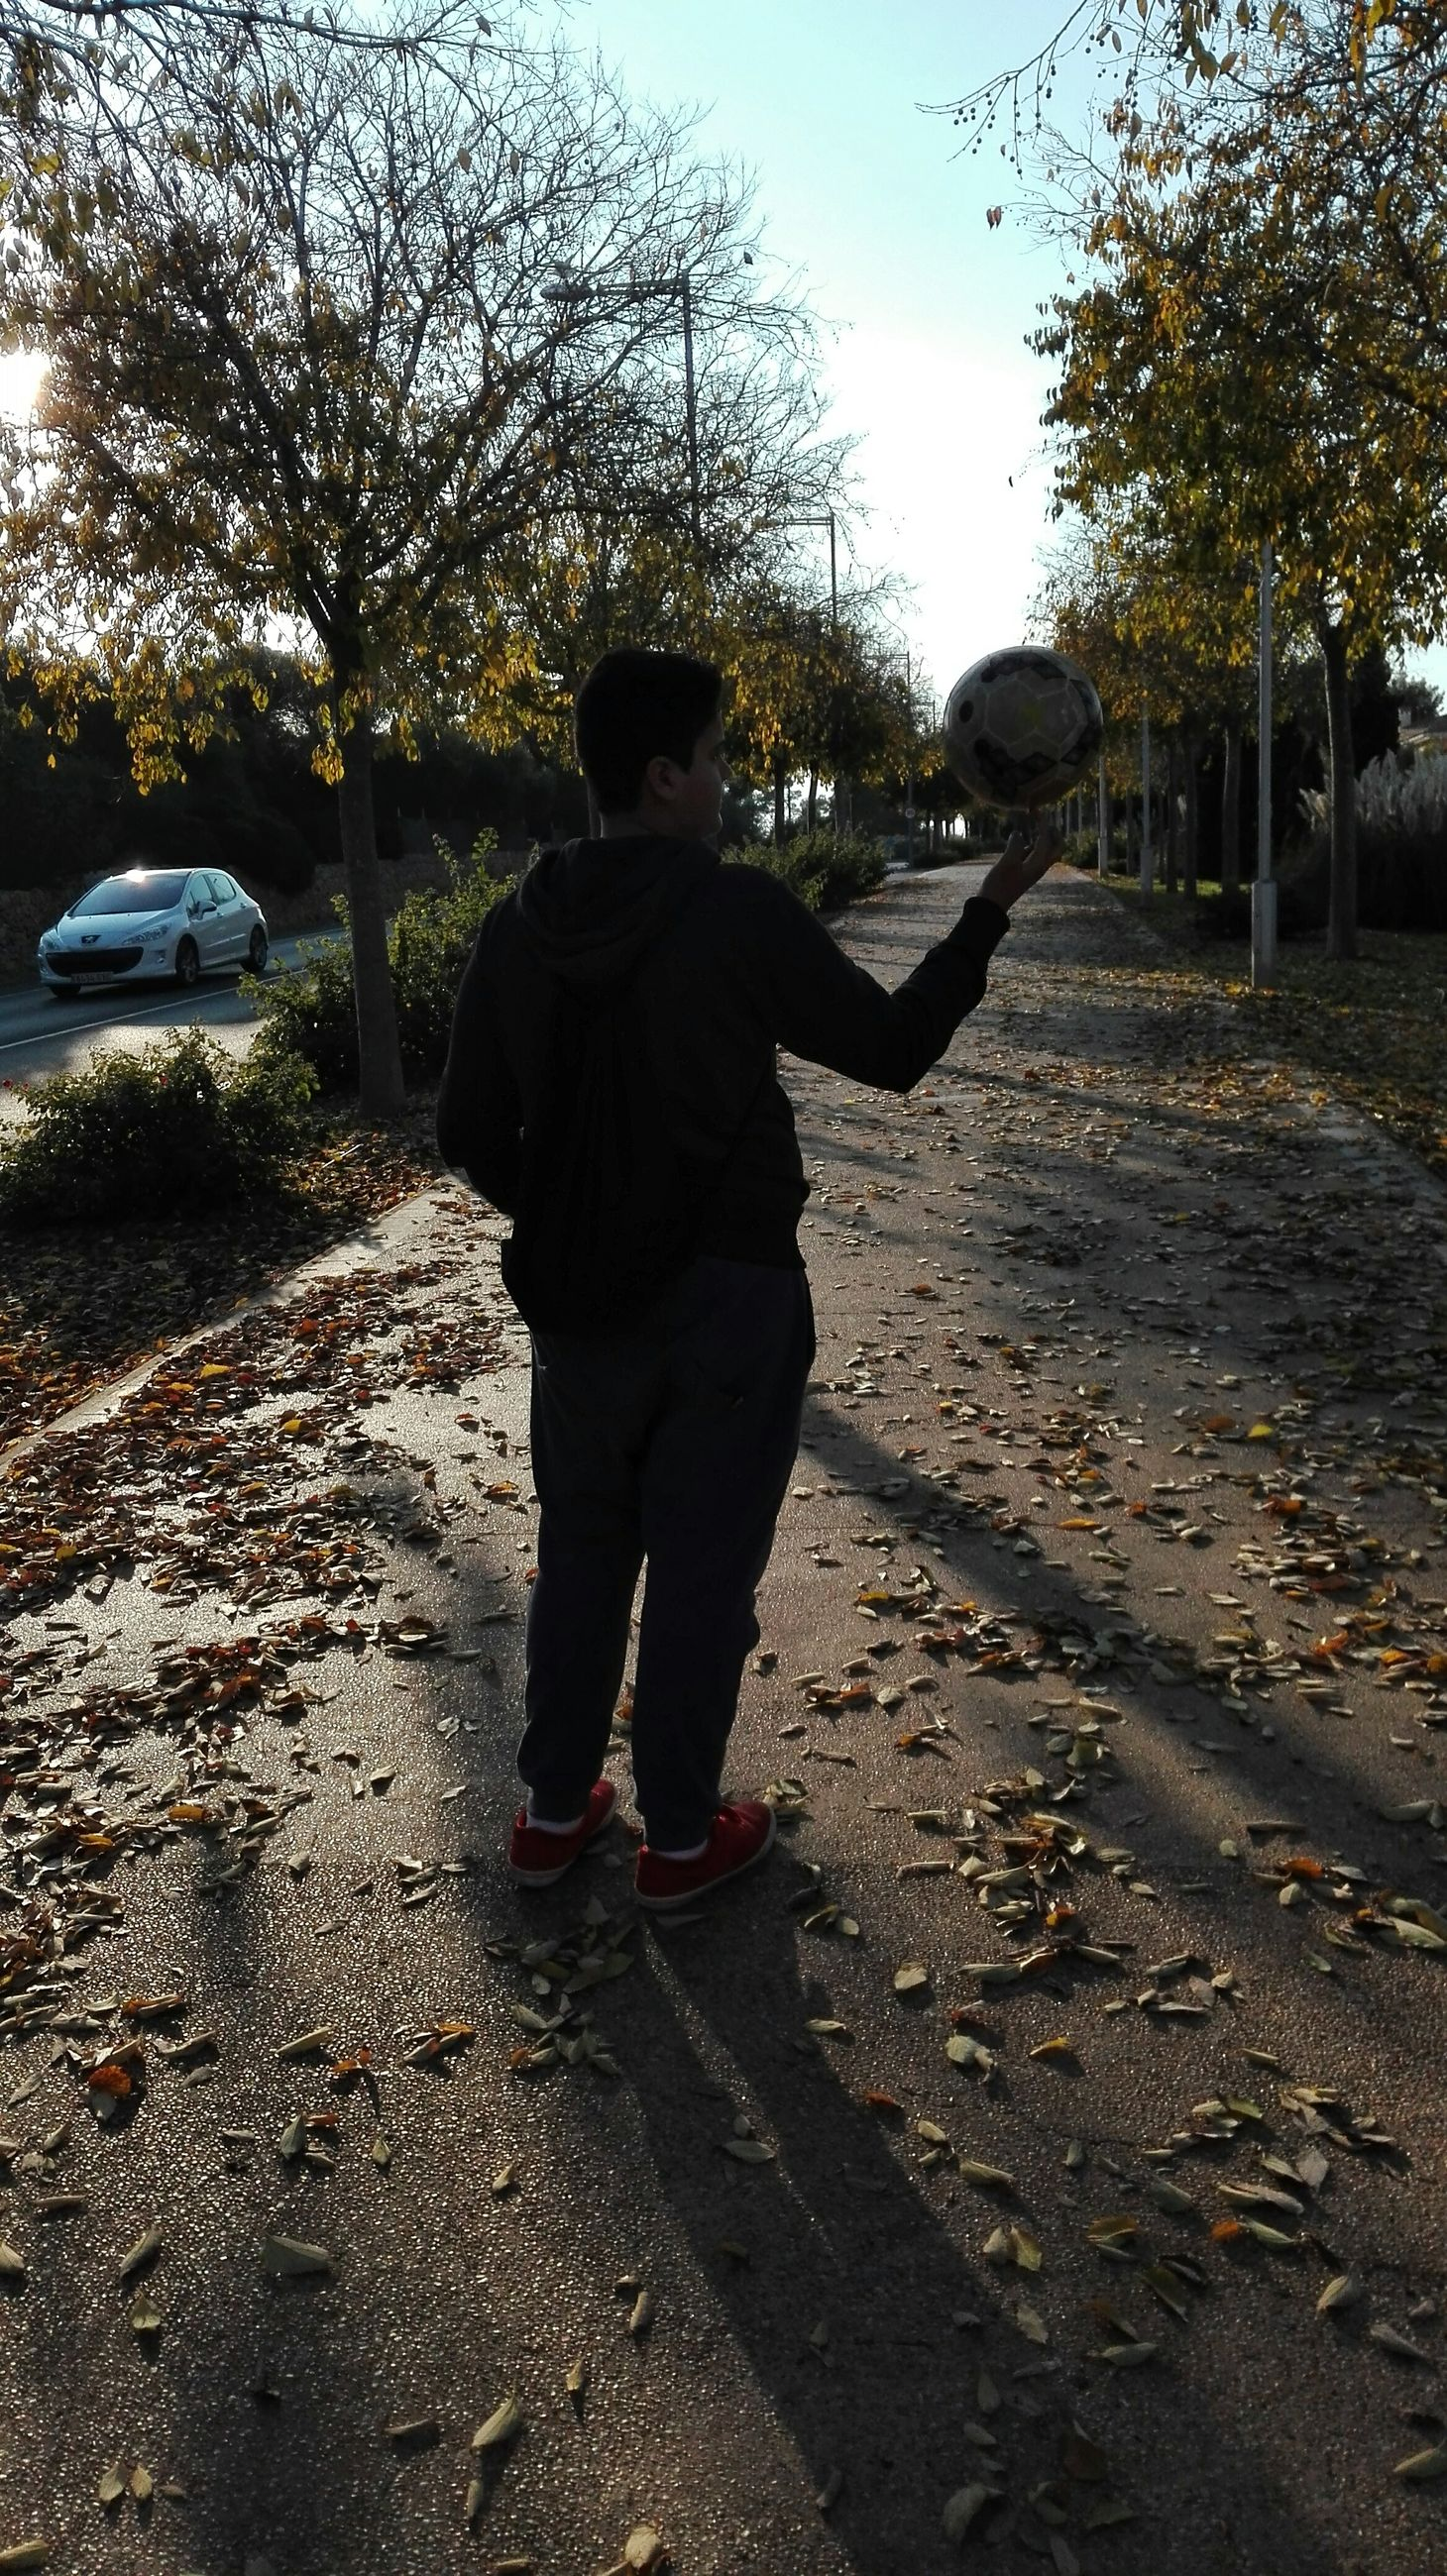 rear view, full length, lifestyles, tree, walking, leisure activity, casual clothing, men, the way forward, sunlight, street, season, standing, outdoors, childhood, shadow, road, sky